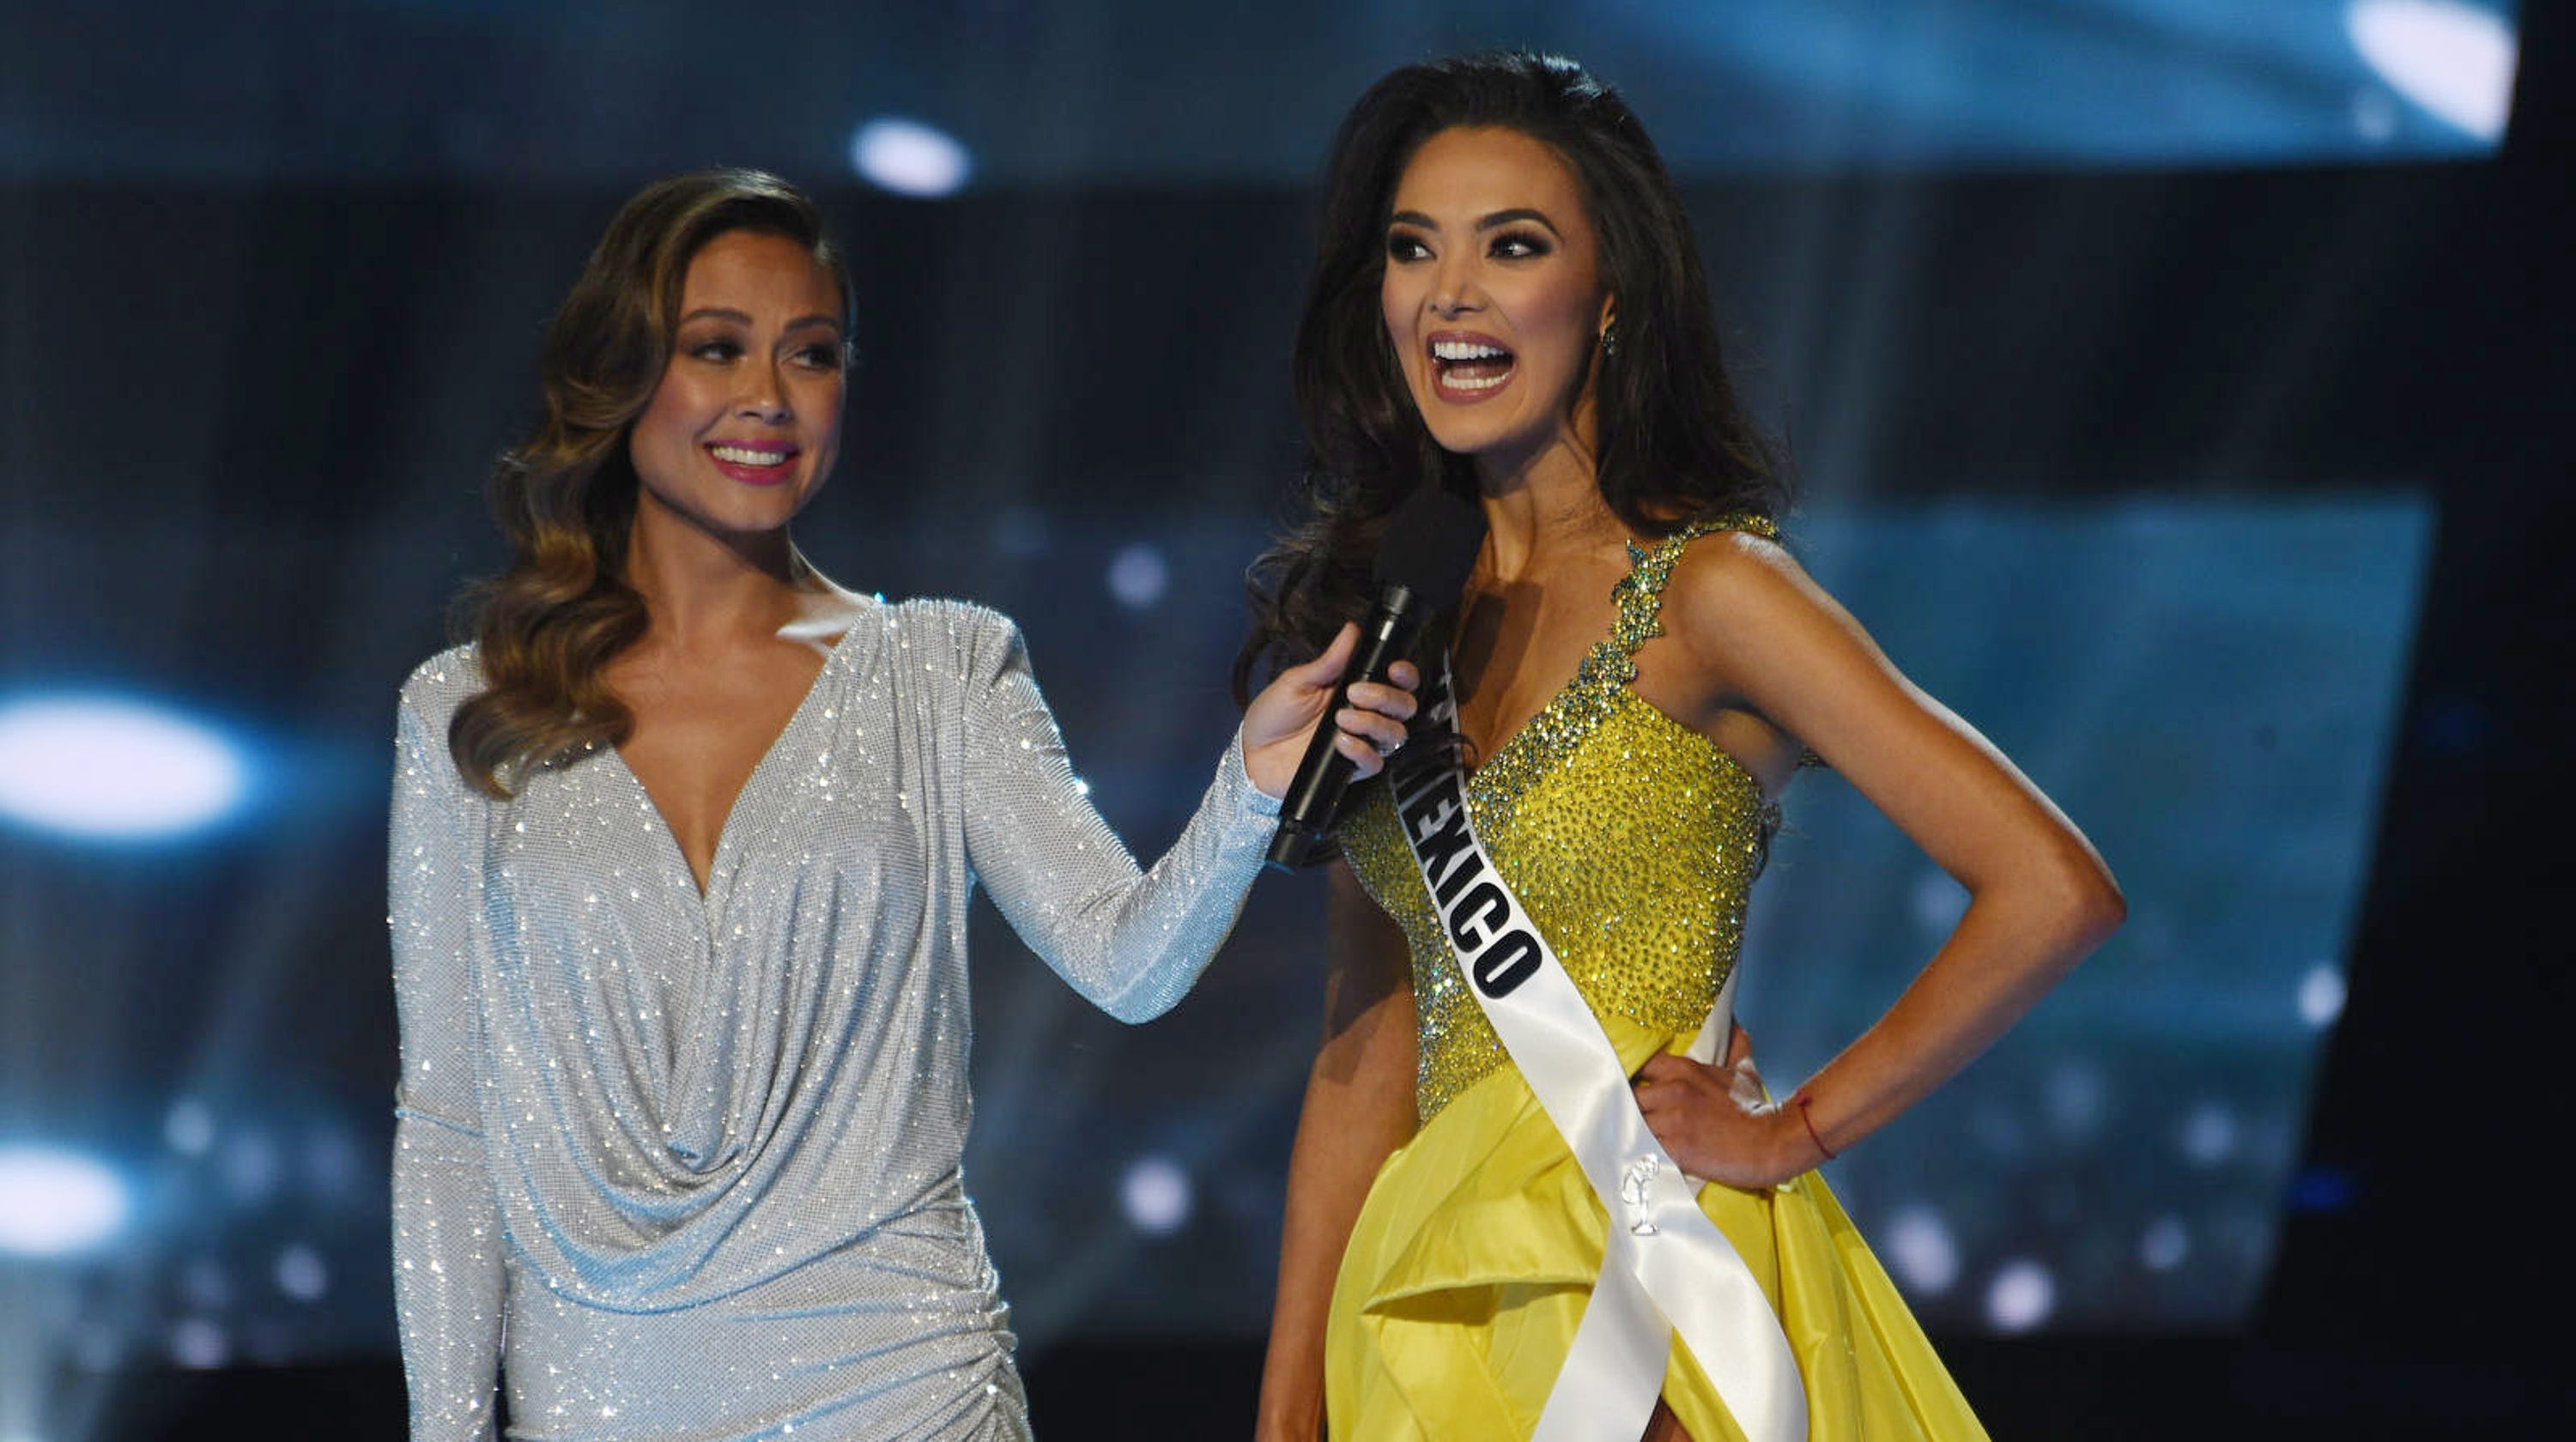 Miss USA 2019 first runner-up from Las Cruces, NM, talks